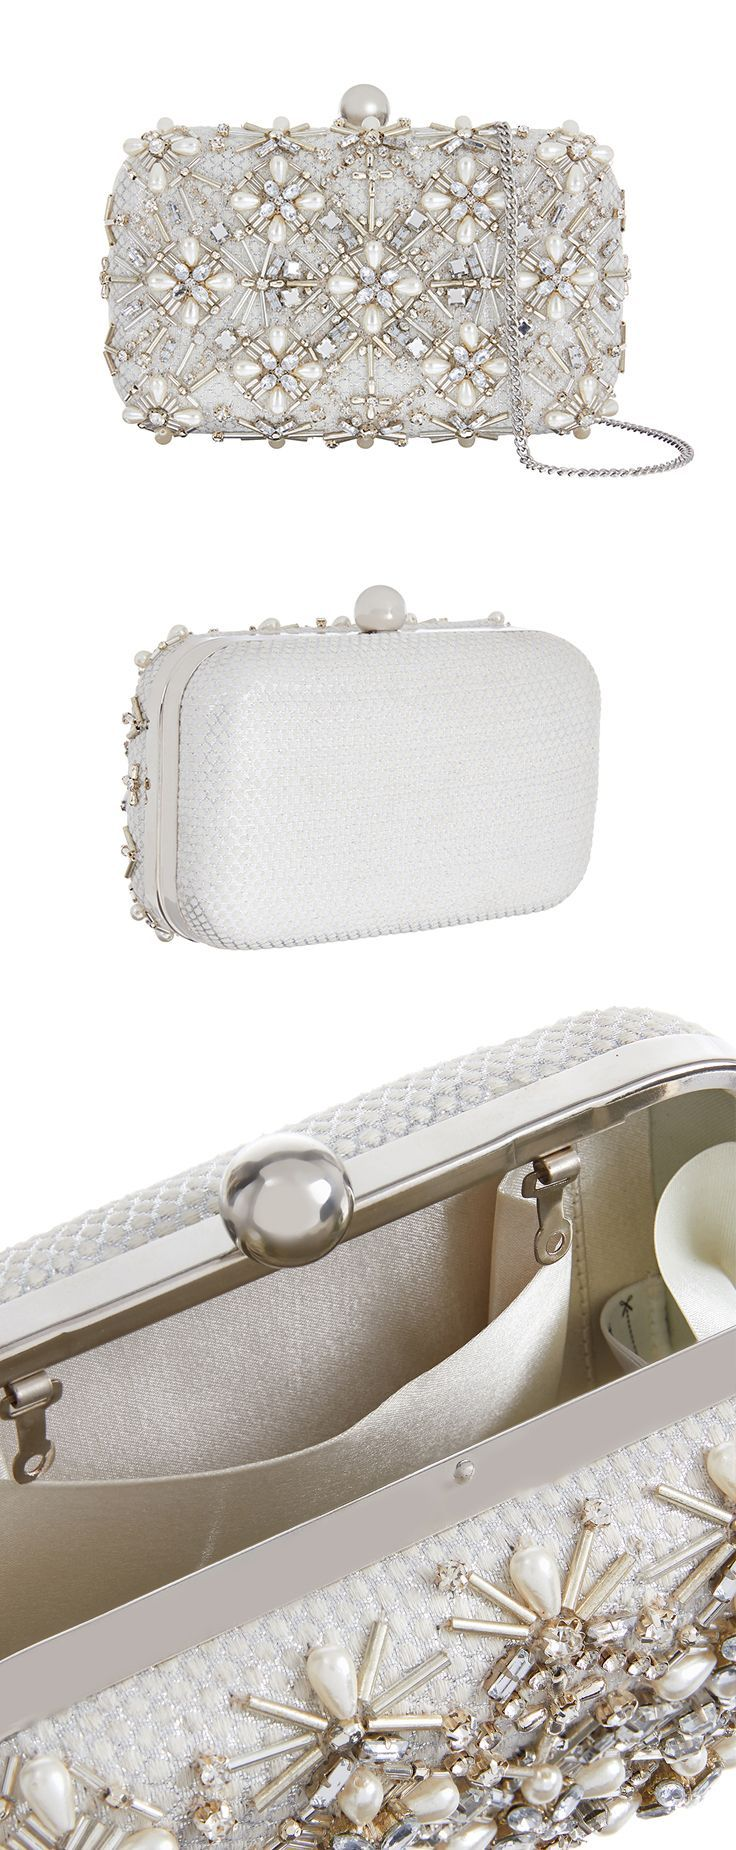 Veronique £45.00 Bridal Hardcase Jewel Beaded Clutch Bag. Accessorize. Woven in shimmery jacquard and bejewelled in a stunning design, our Veronique hard-case clutch bag is destined for a stylish bride. Set with bugle beads, faux pearls and crystal gems, it features a sleek metal frame and a chain strap inside. #bags #eveningwear #sequins #bling #bagaddict #affiliatelink #aw17 #clutchbags